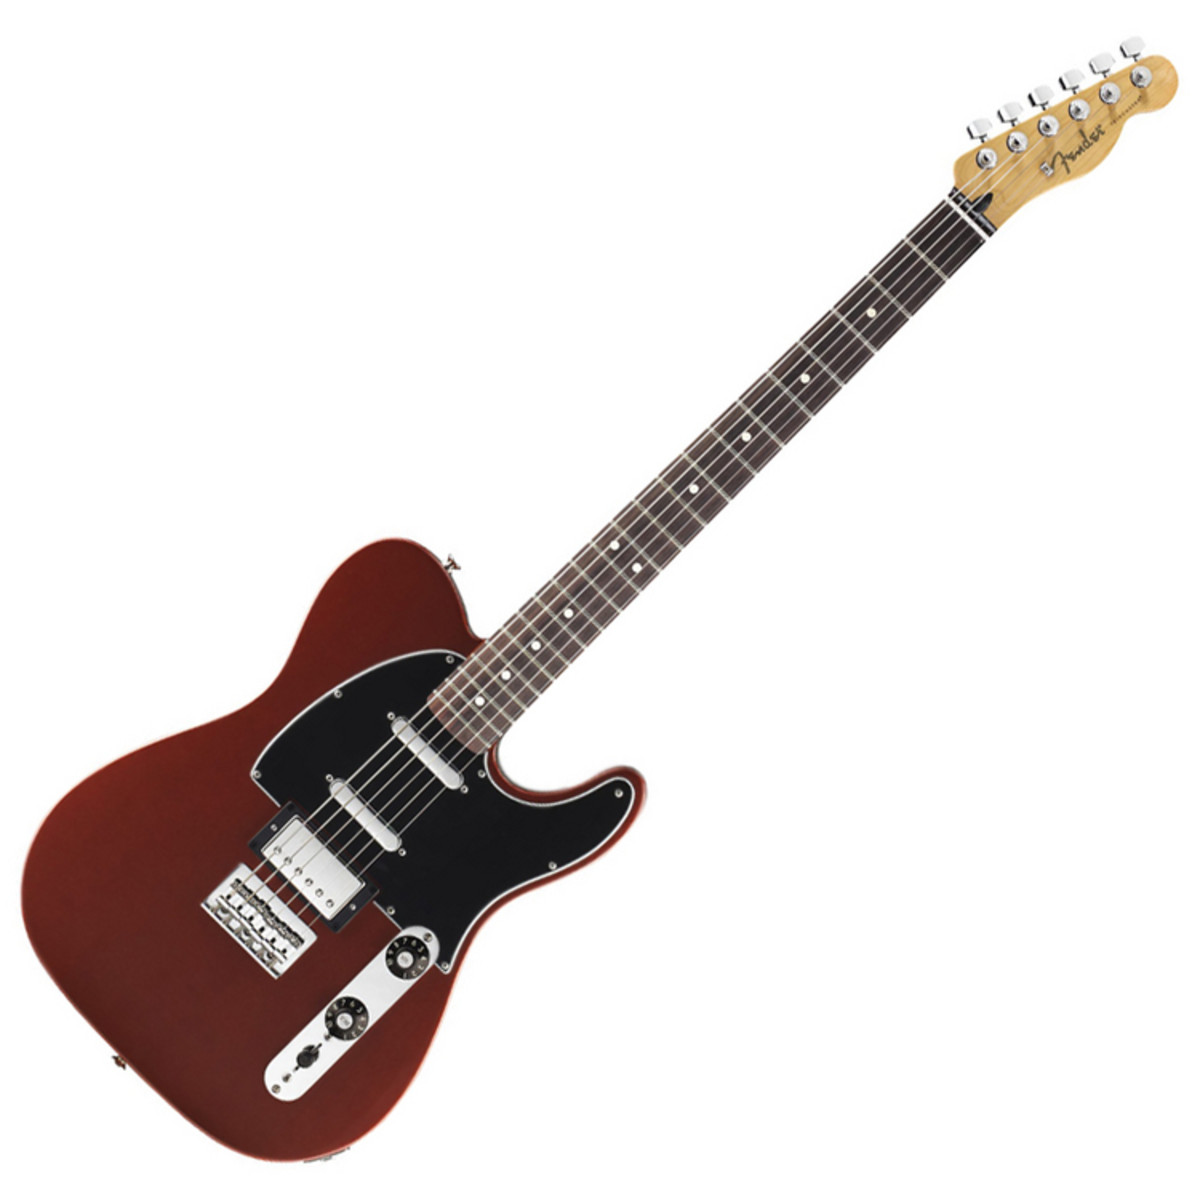 Blacktop Telecaster Switch Wiring - Wiring Diagram Structure on